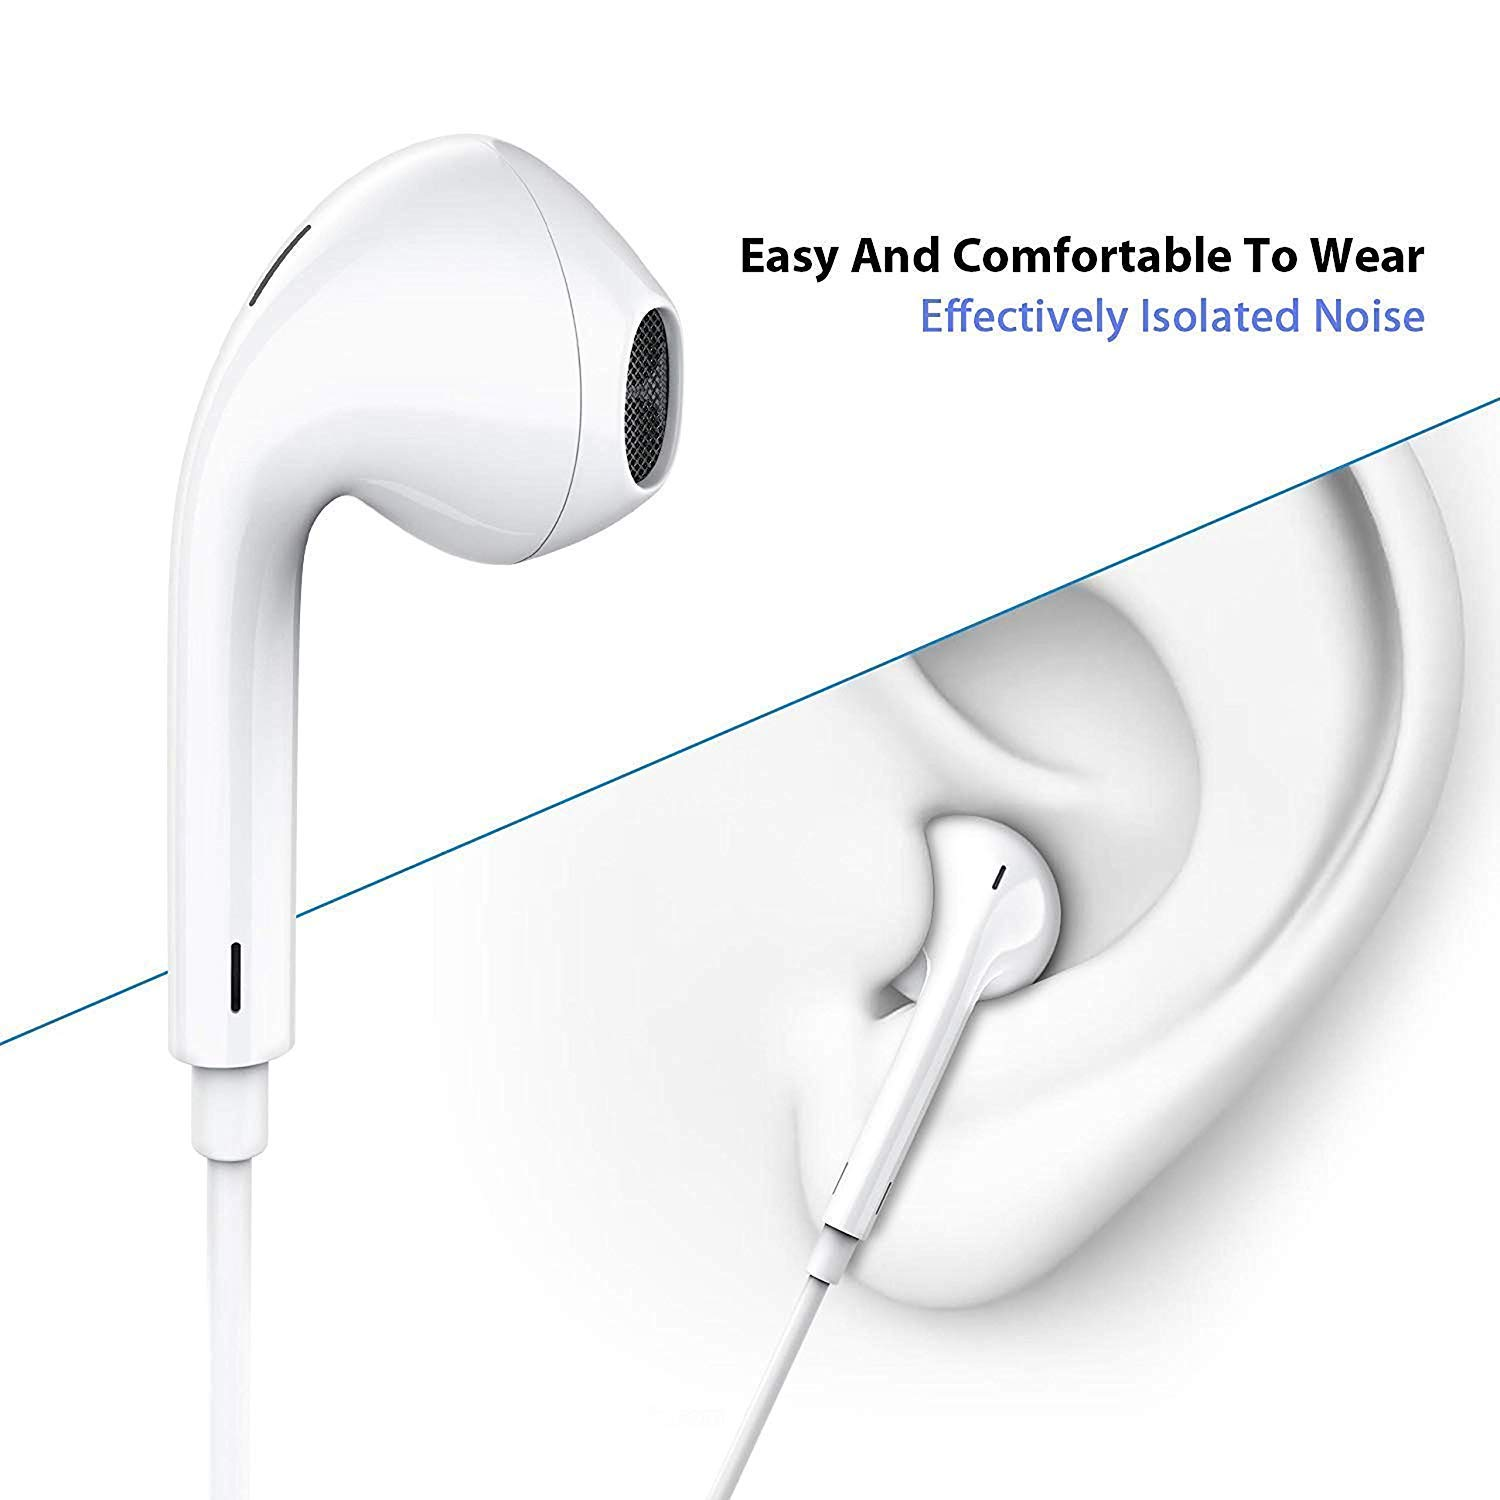 Android Headphones/Earphones/Earbuds,Supfox 3.5mm Aux Wired Headphones Noise Isolating Earphones with Built-in Microphone & Volume Control Compatible with Galaxy S9 S8 S7 S6 S5,More Android Device